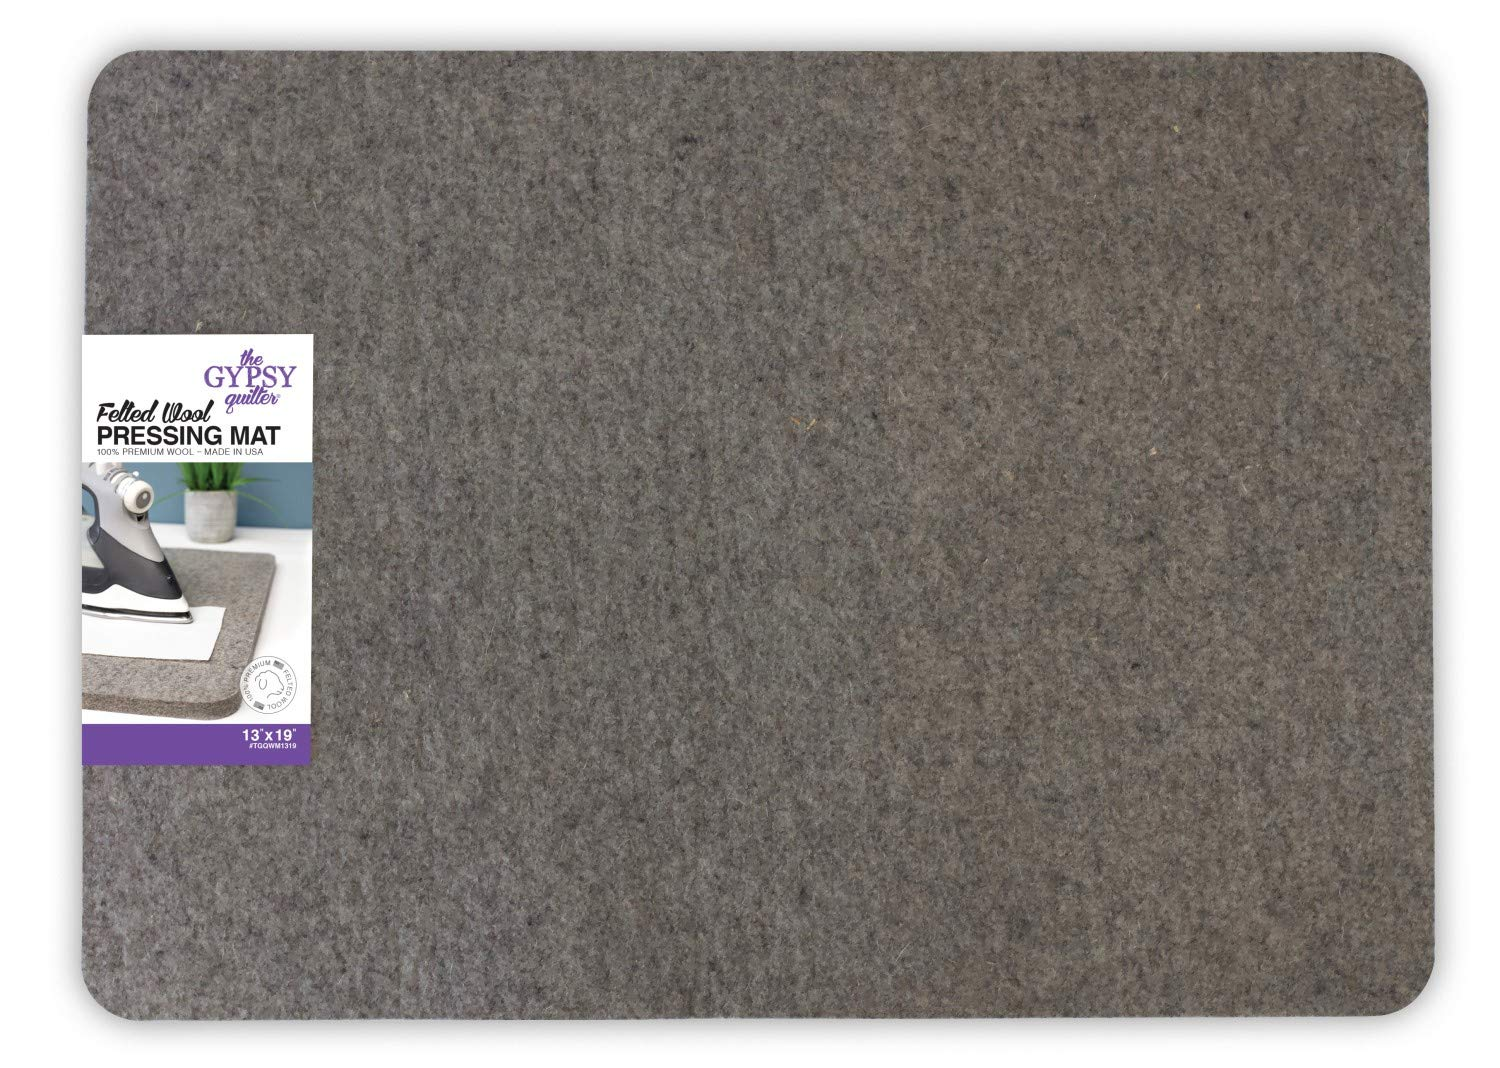 Wool Pressing Mat 14-1/3in Wide x 18-7/8in Long x 1/2in Thick from The Gypsy Quilter by Gypsy Quilter